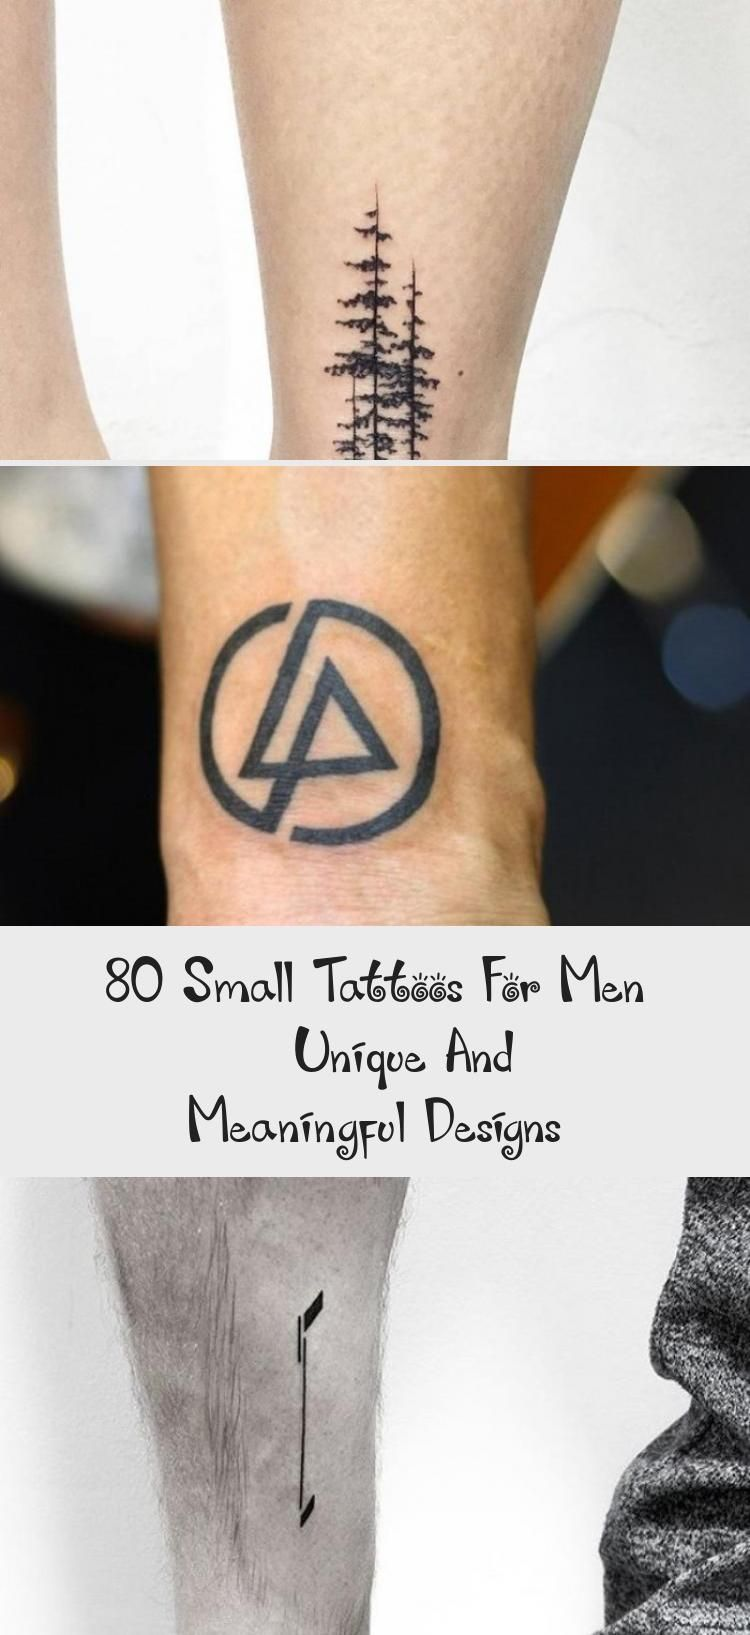 80 Small Tattoos For Men Unique And Meaningful Designs